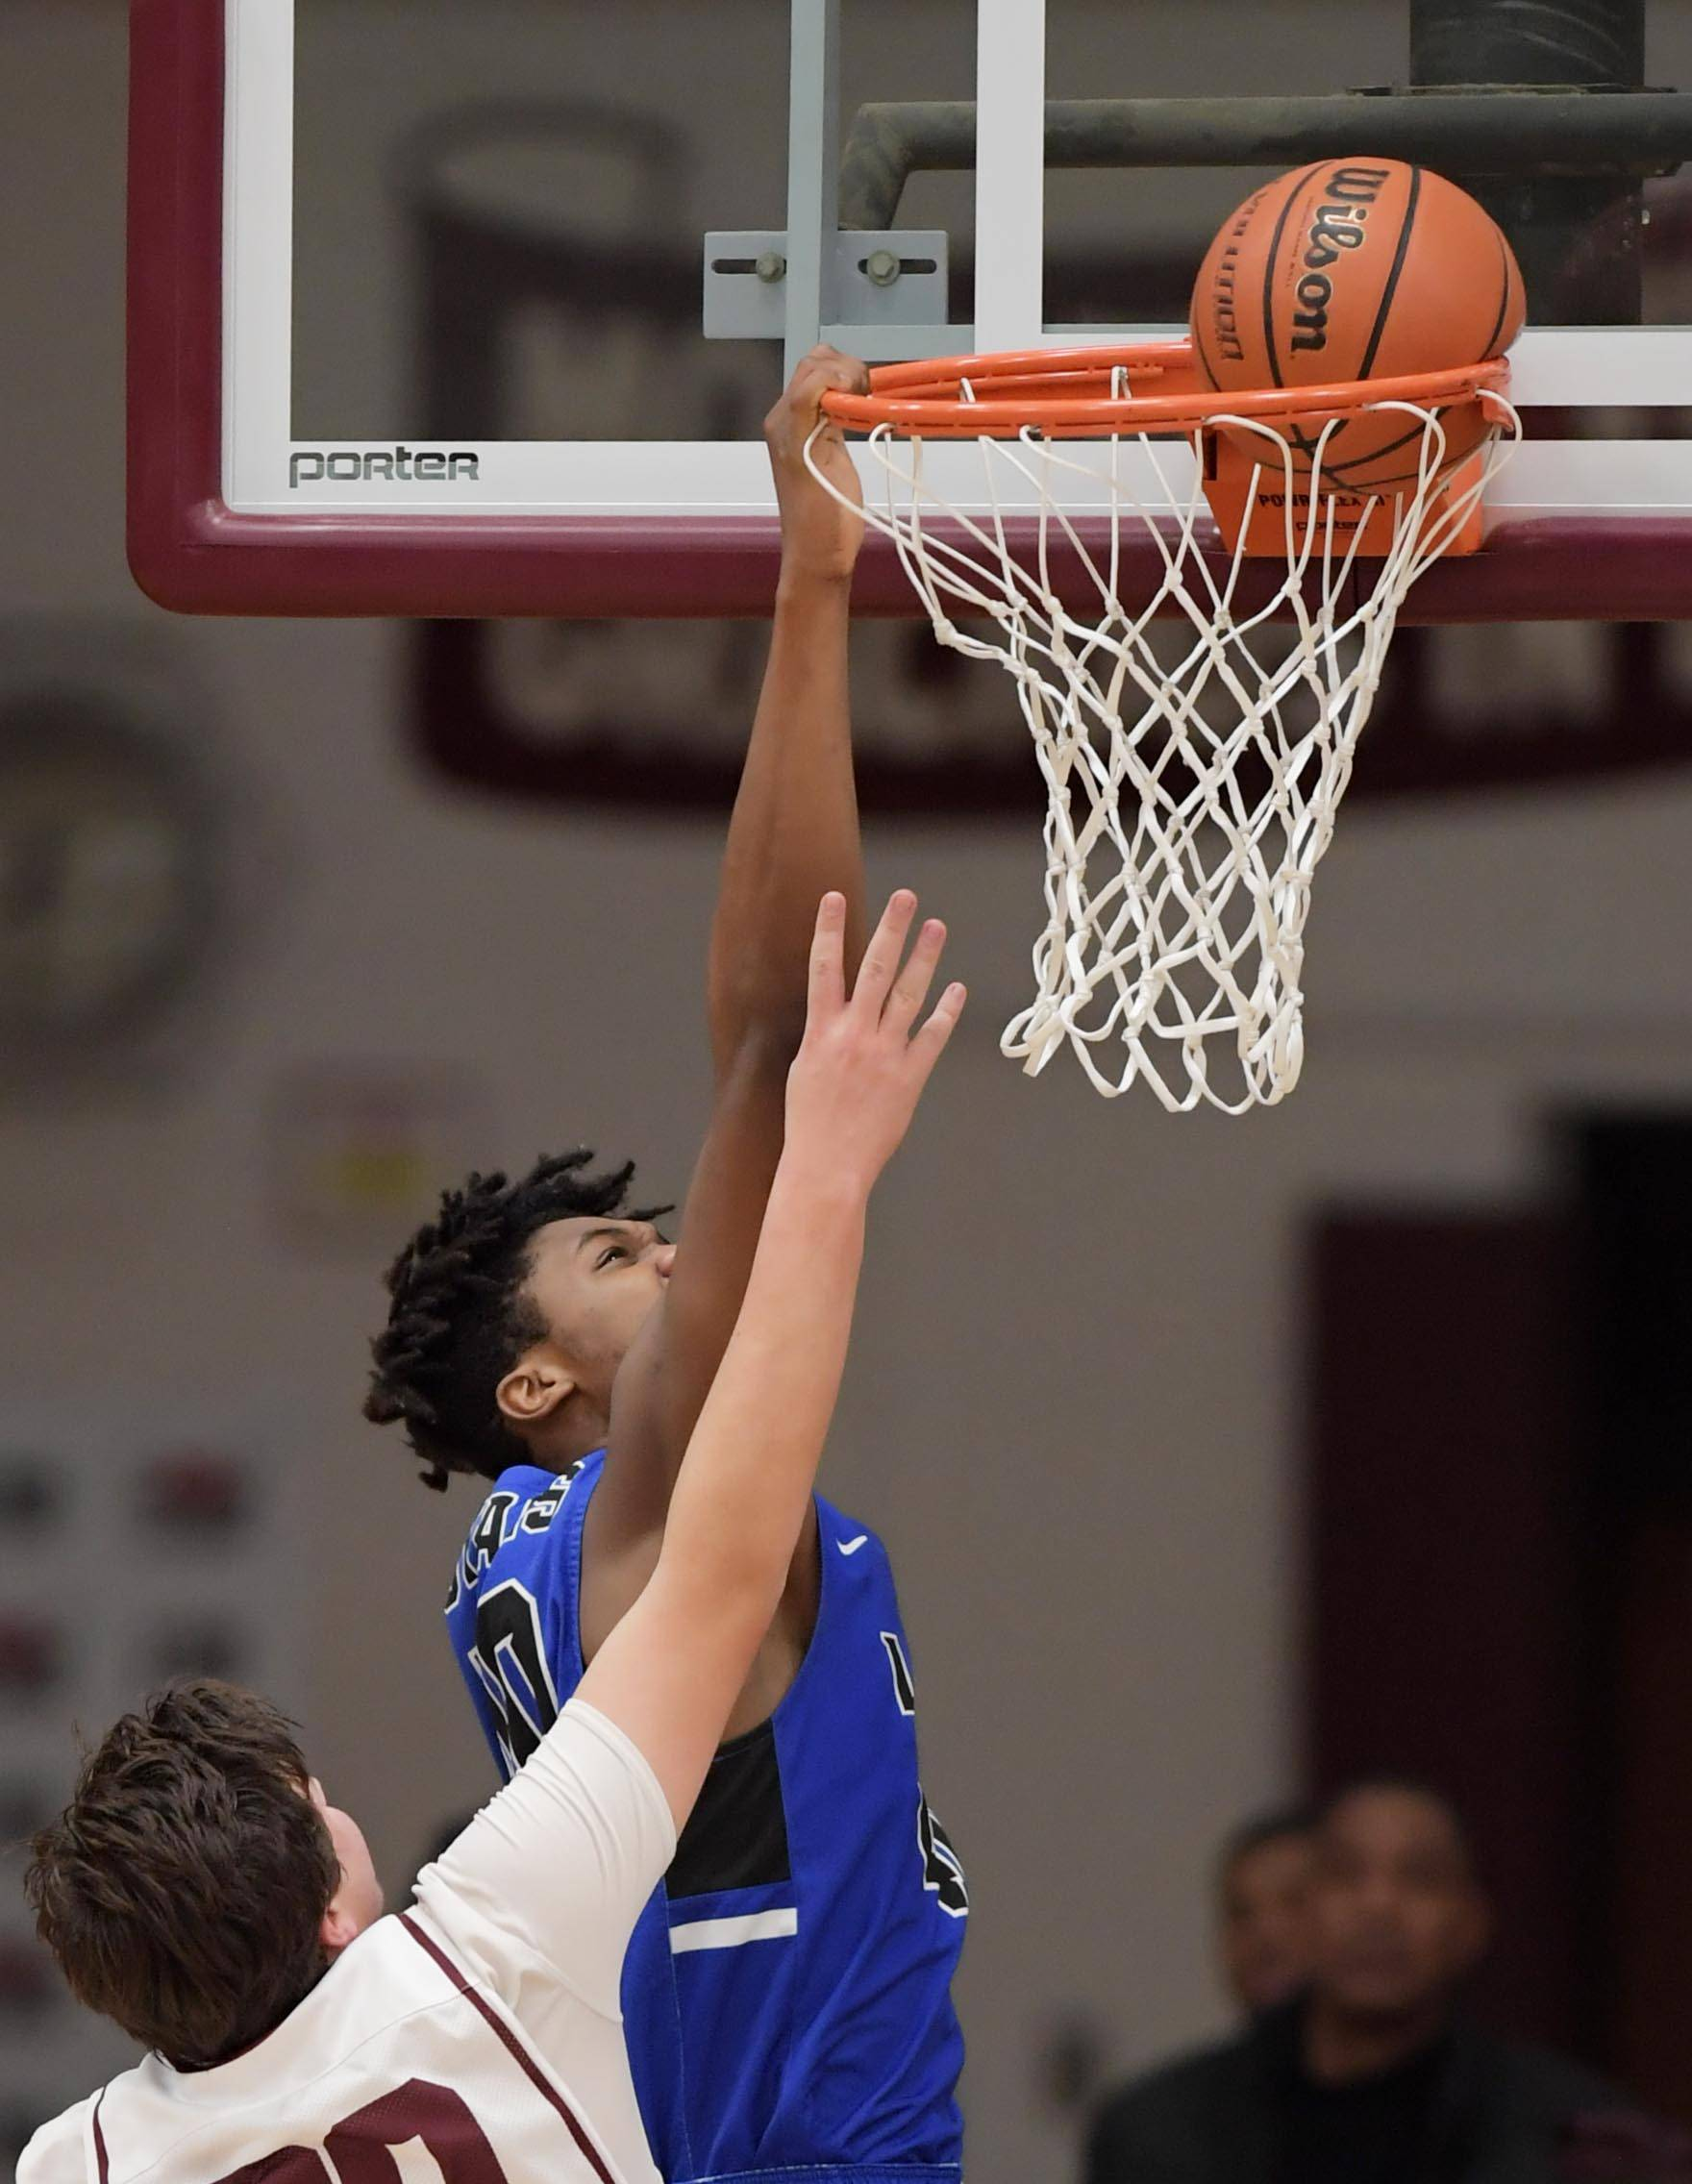 Larkin's Jalen Shaw dunks against Elgin's Jack Sitter at the end of the first quarter at  Chesbrough Field House at Elgin High School Tuesday.